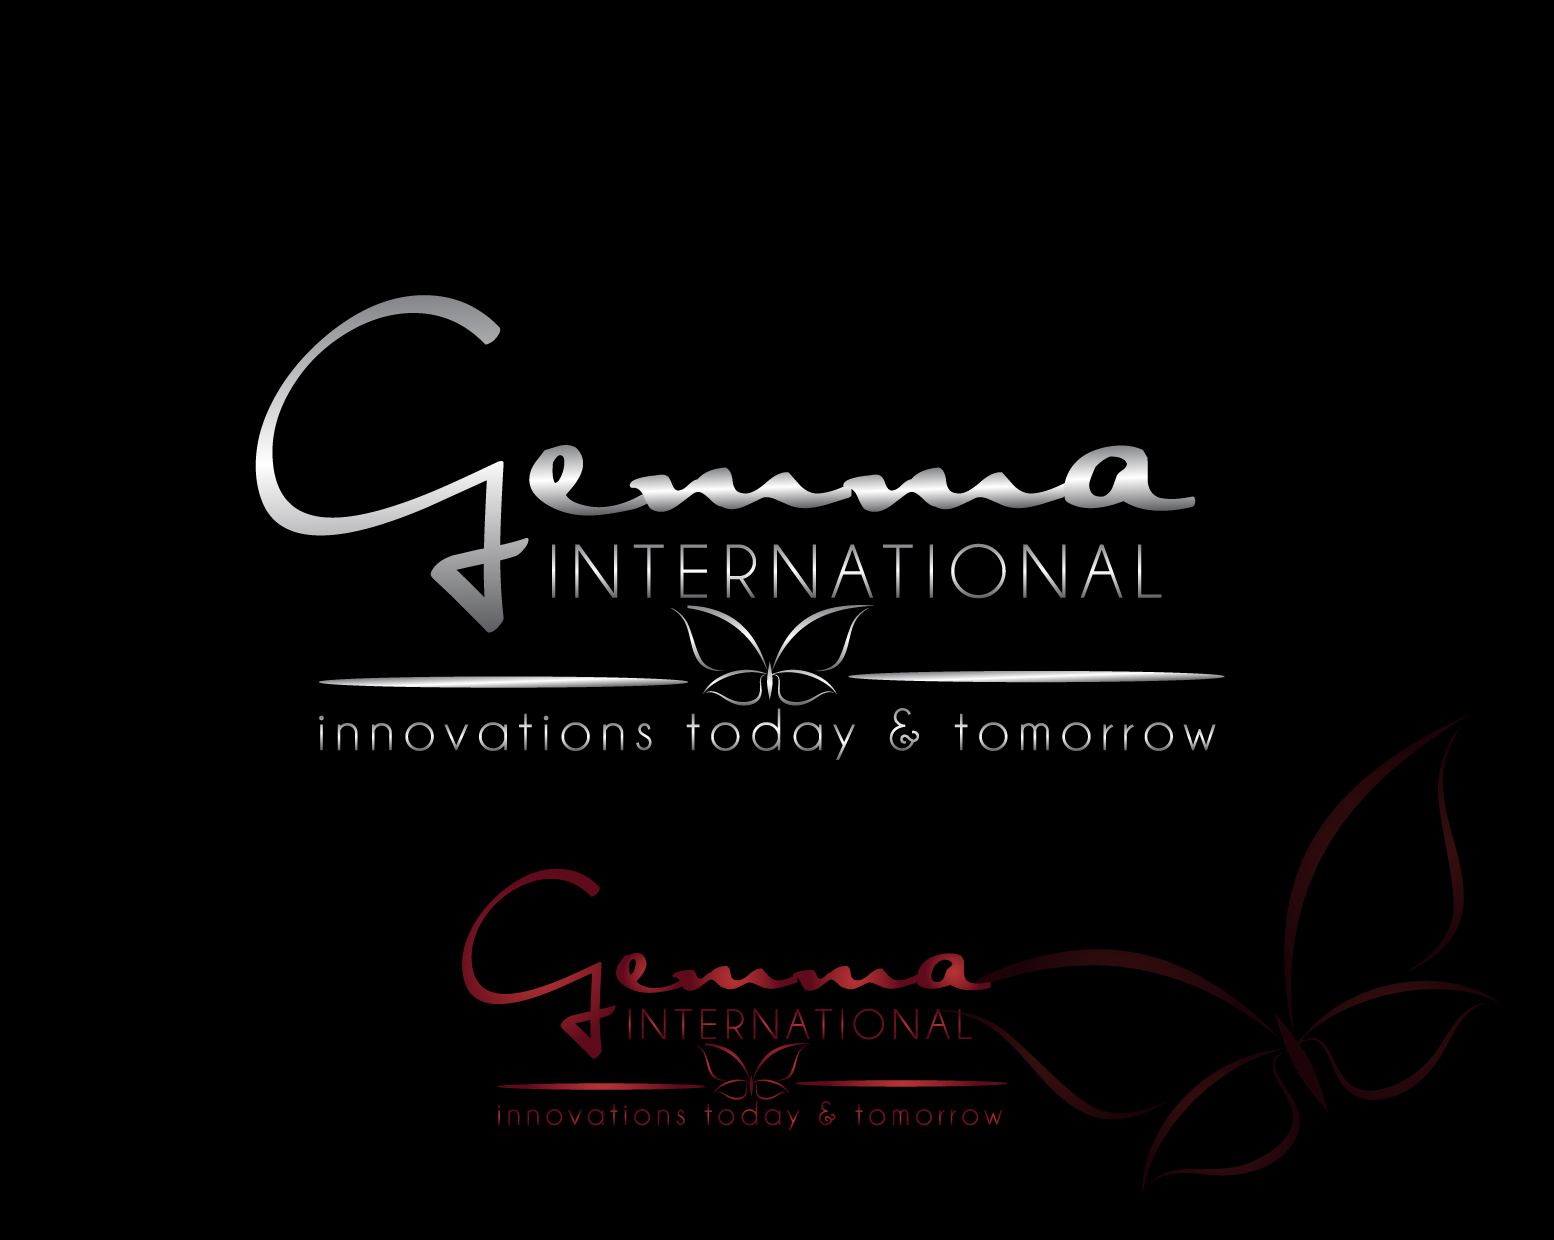 Logo Design by Darina Dimitrova - Entry No. 112 in the Logo Design Contest Artistic Logo Design for Gemma International.